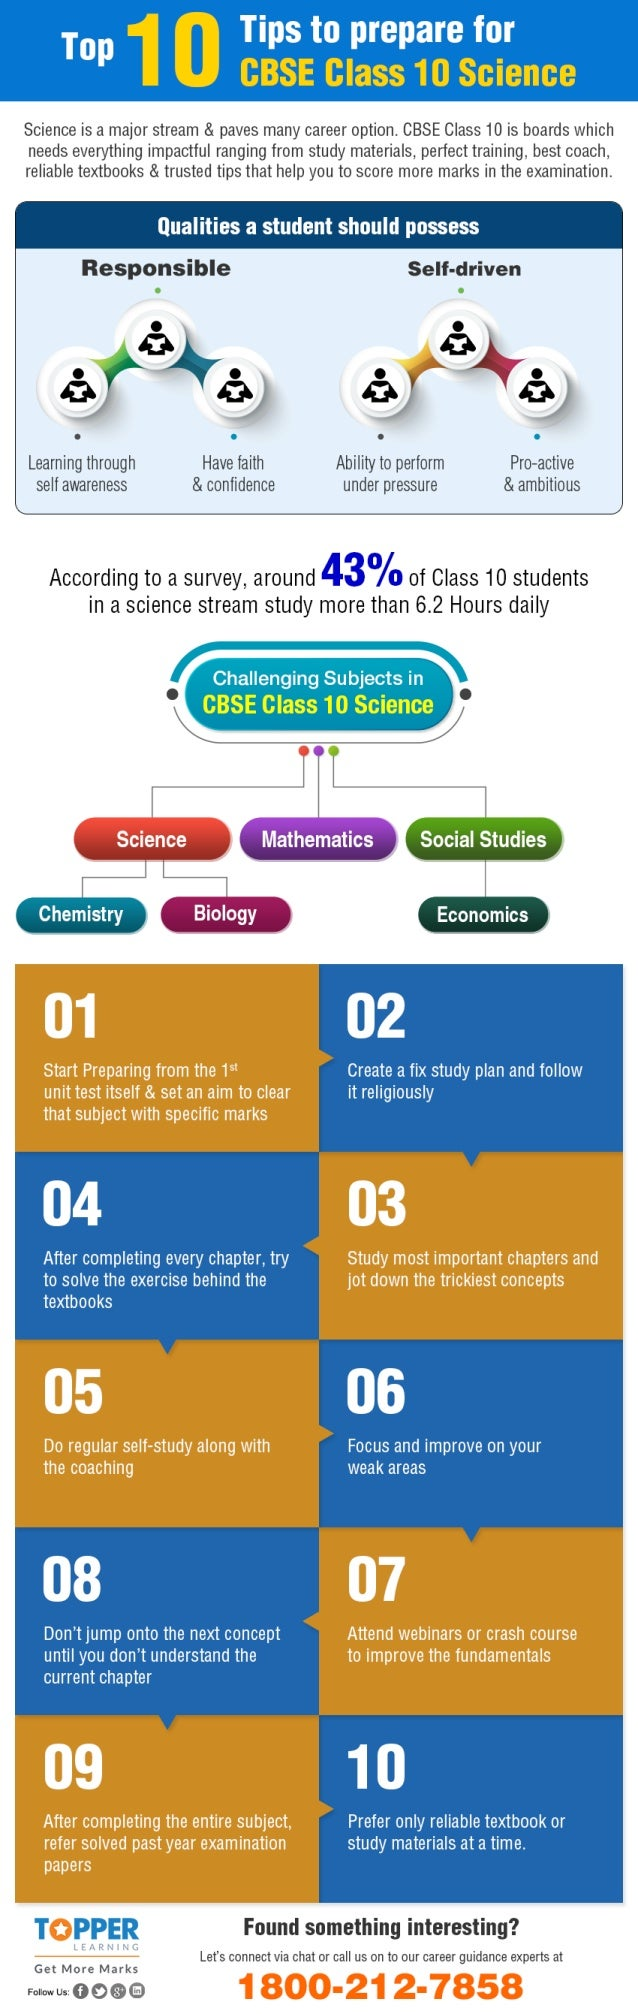 Top 10 Tips to Prepare for CBSE Class 10 Science